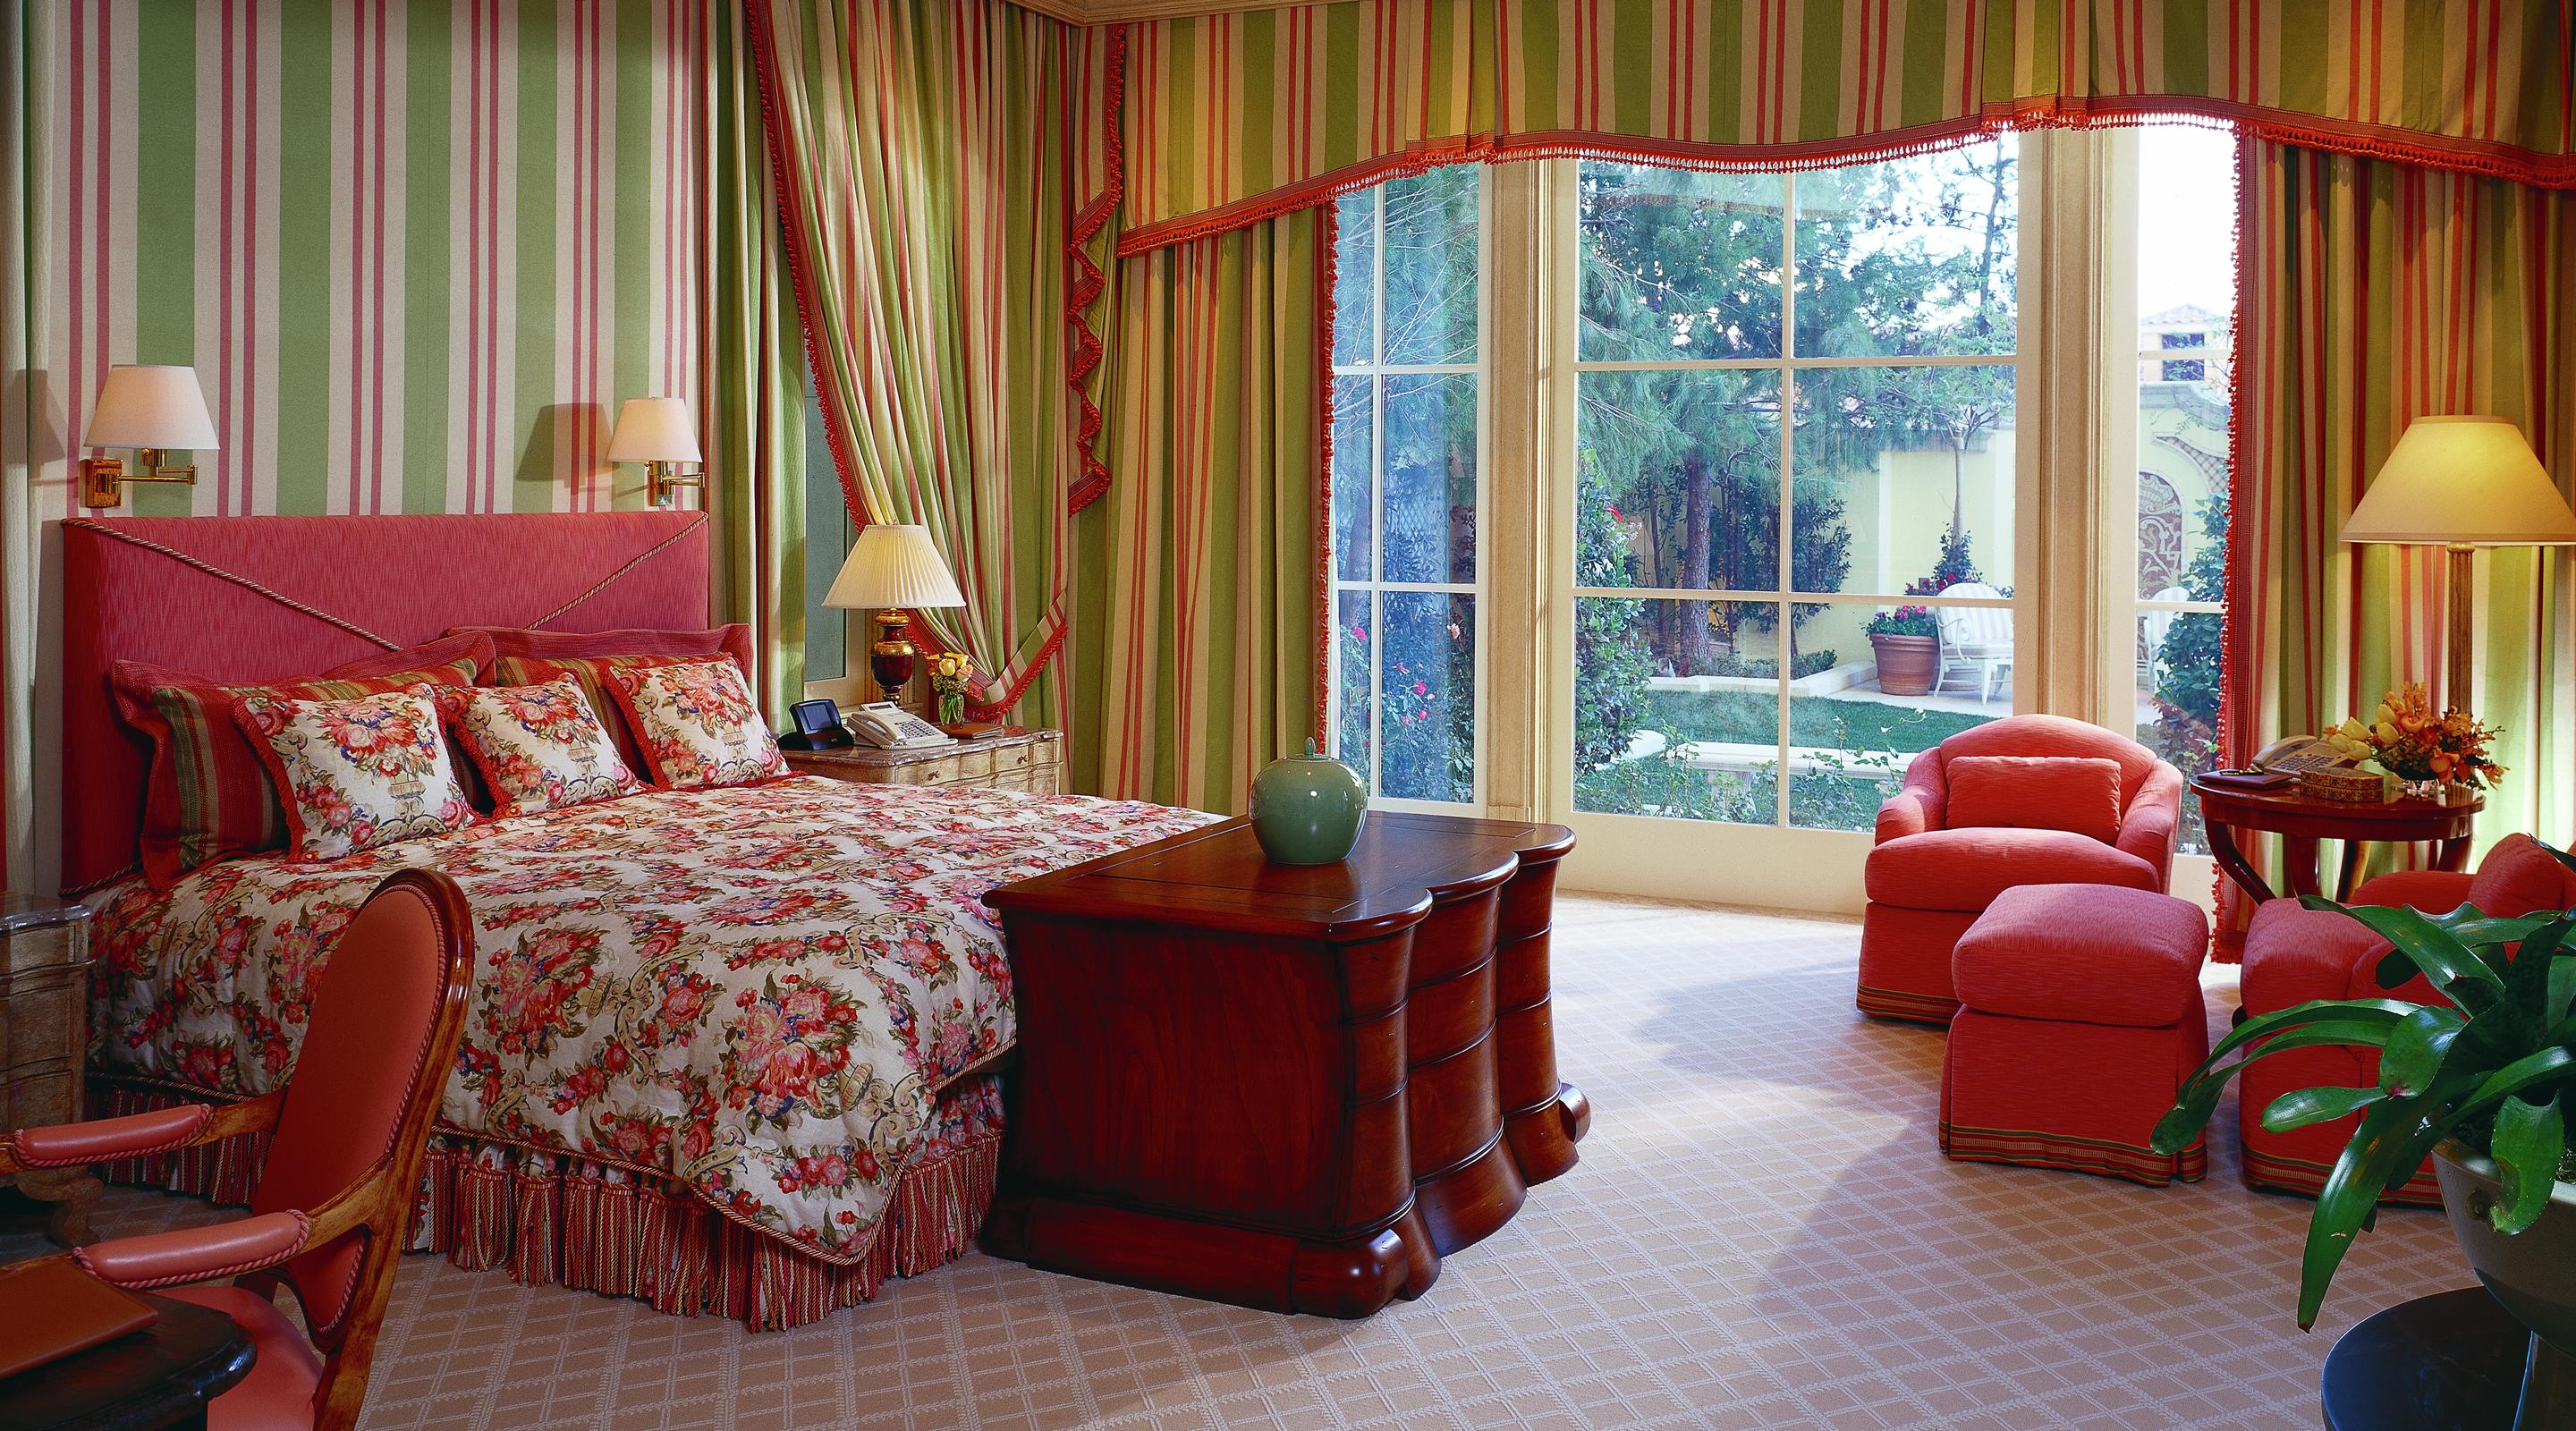 apartments bedroom the image in slideshow nv vegas las presidio north